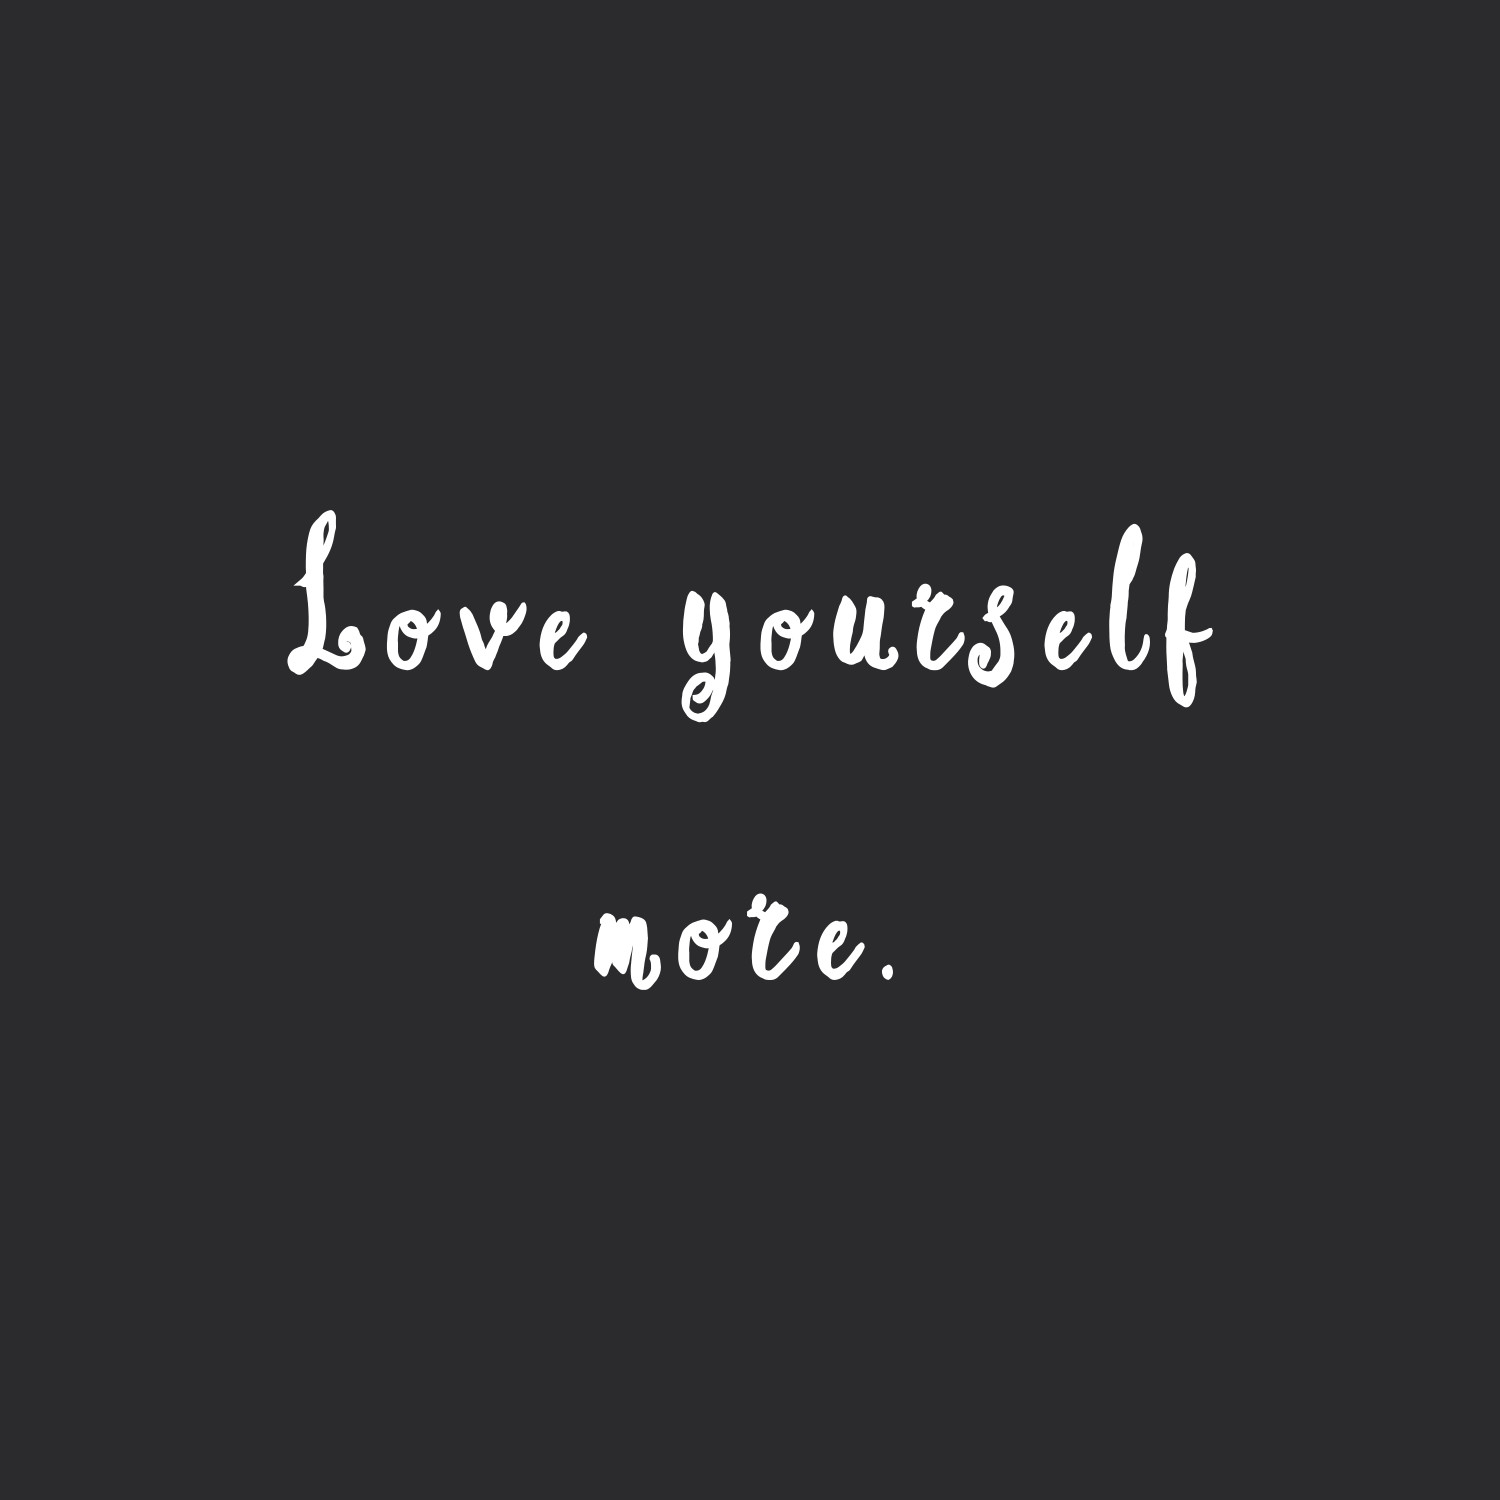 Love yourself more! Browse our collection of inspirational exercise and weight loss quotes and get instant health and fitness motivation. Transform positive thoughts into positive actions and get fit, healthy and happy! https://www.spotebi.com/workout-motivation/love-yourself-more-inspirational-exercise-and-weight-loss-quote/